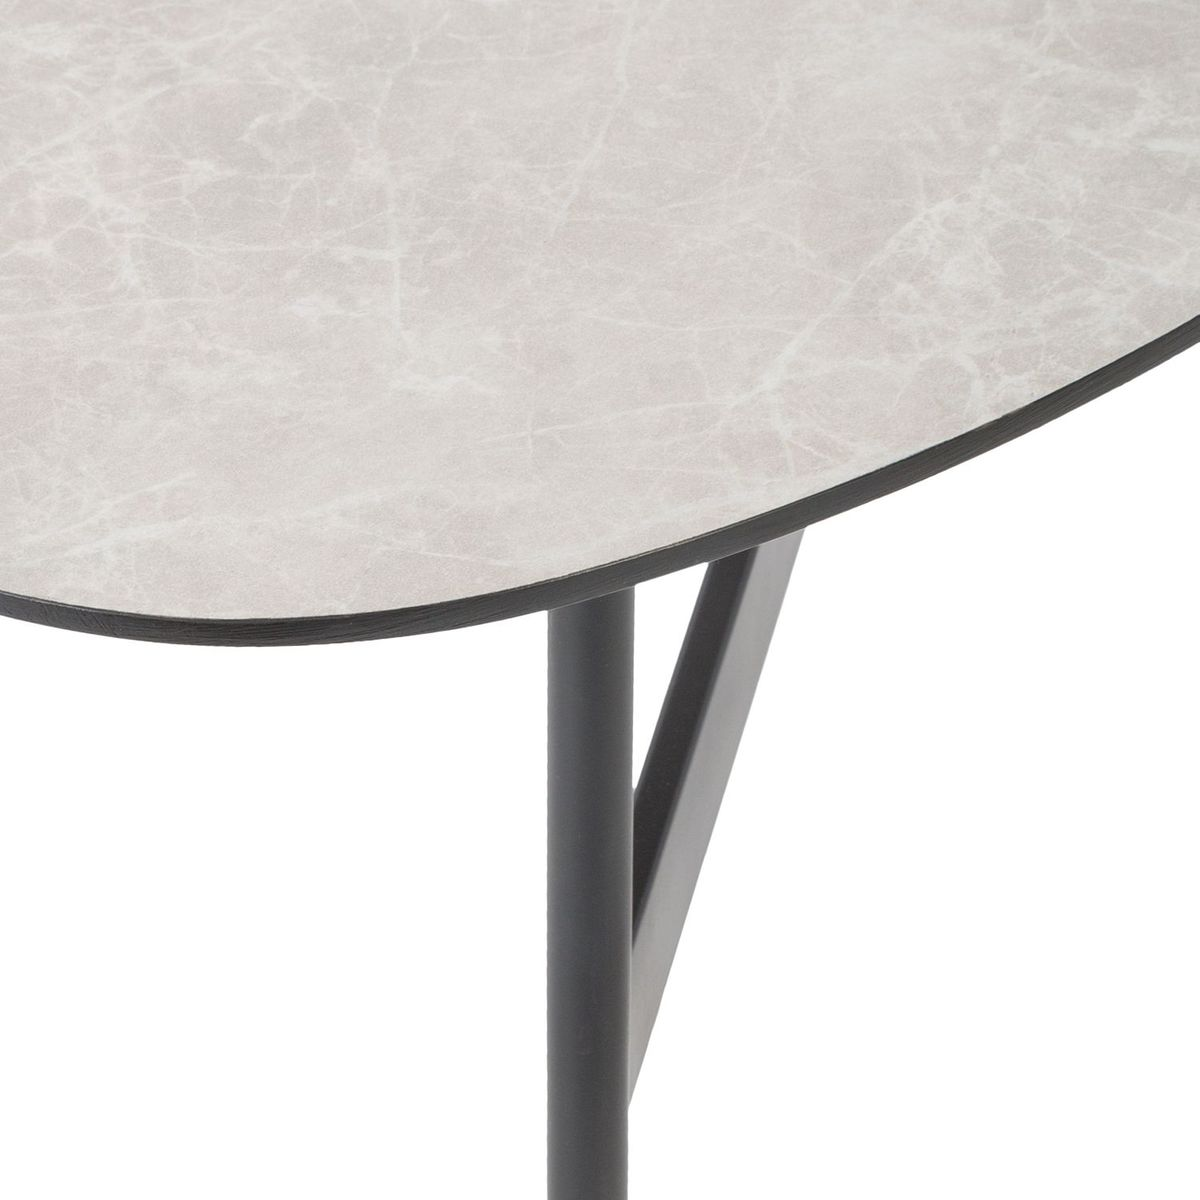 Table Light Stone Cm X H45 Contemporain D'appoint L60 XiZPuk